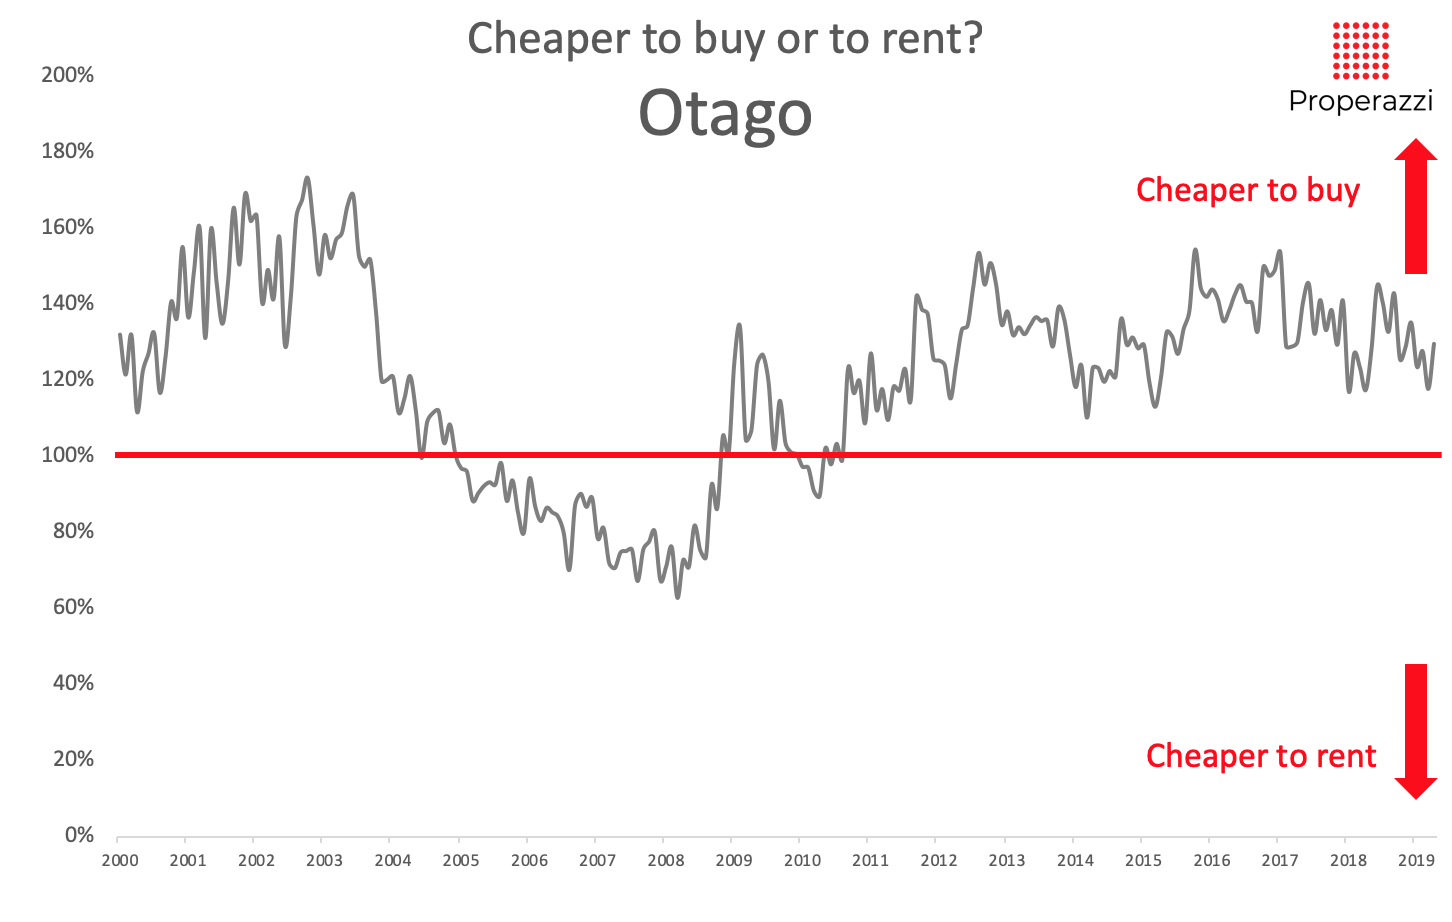 To buy or to rent in Otago in May 2019